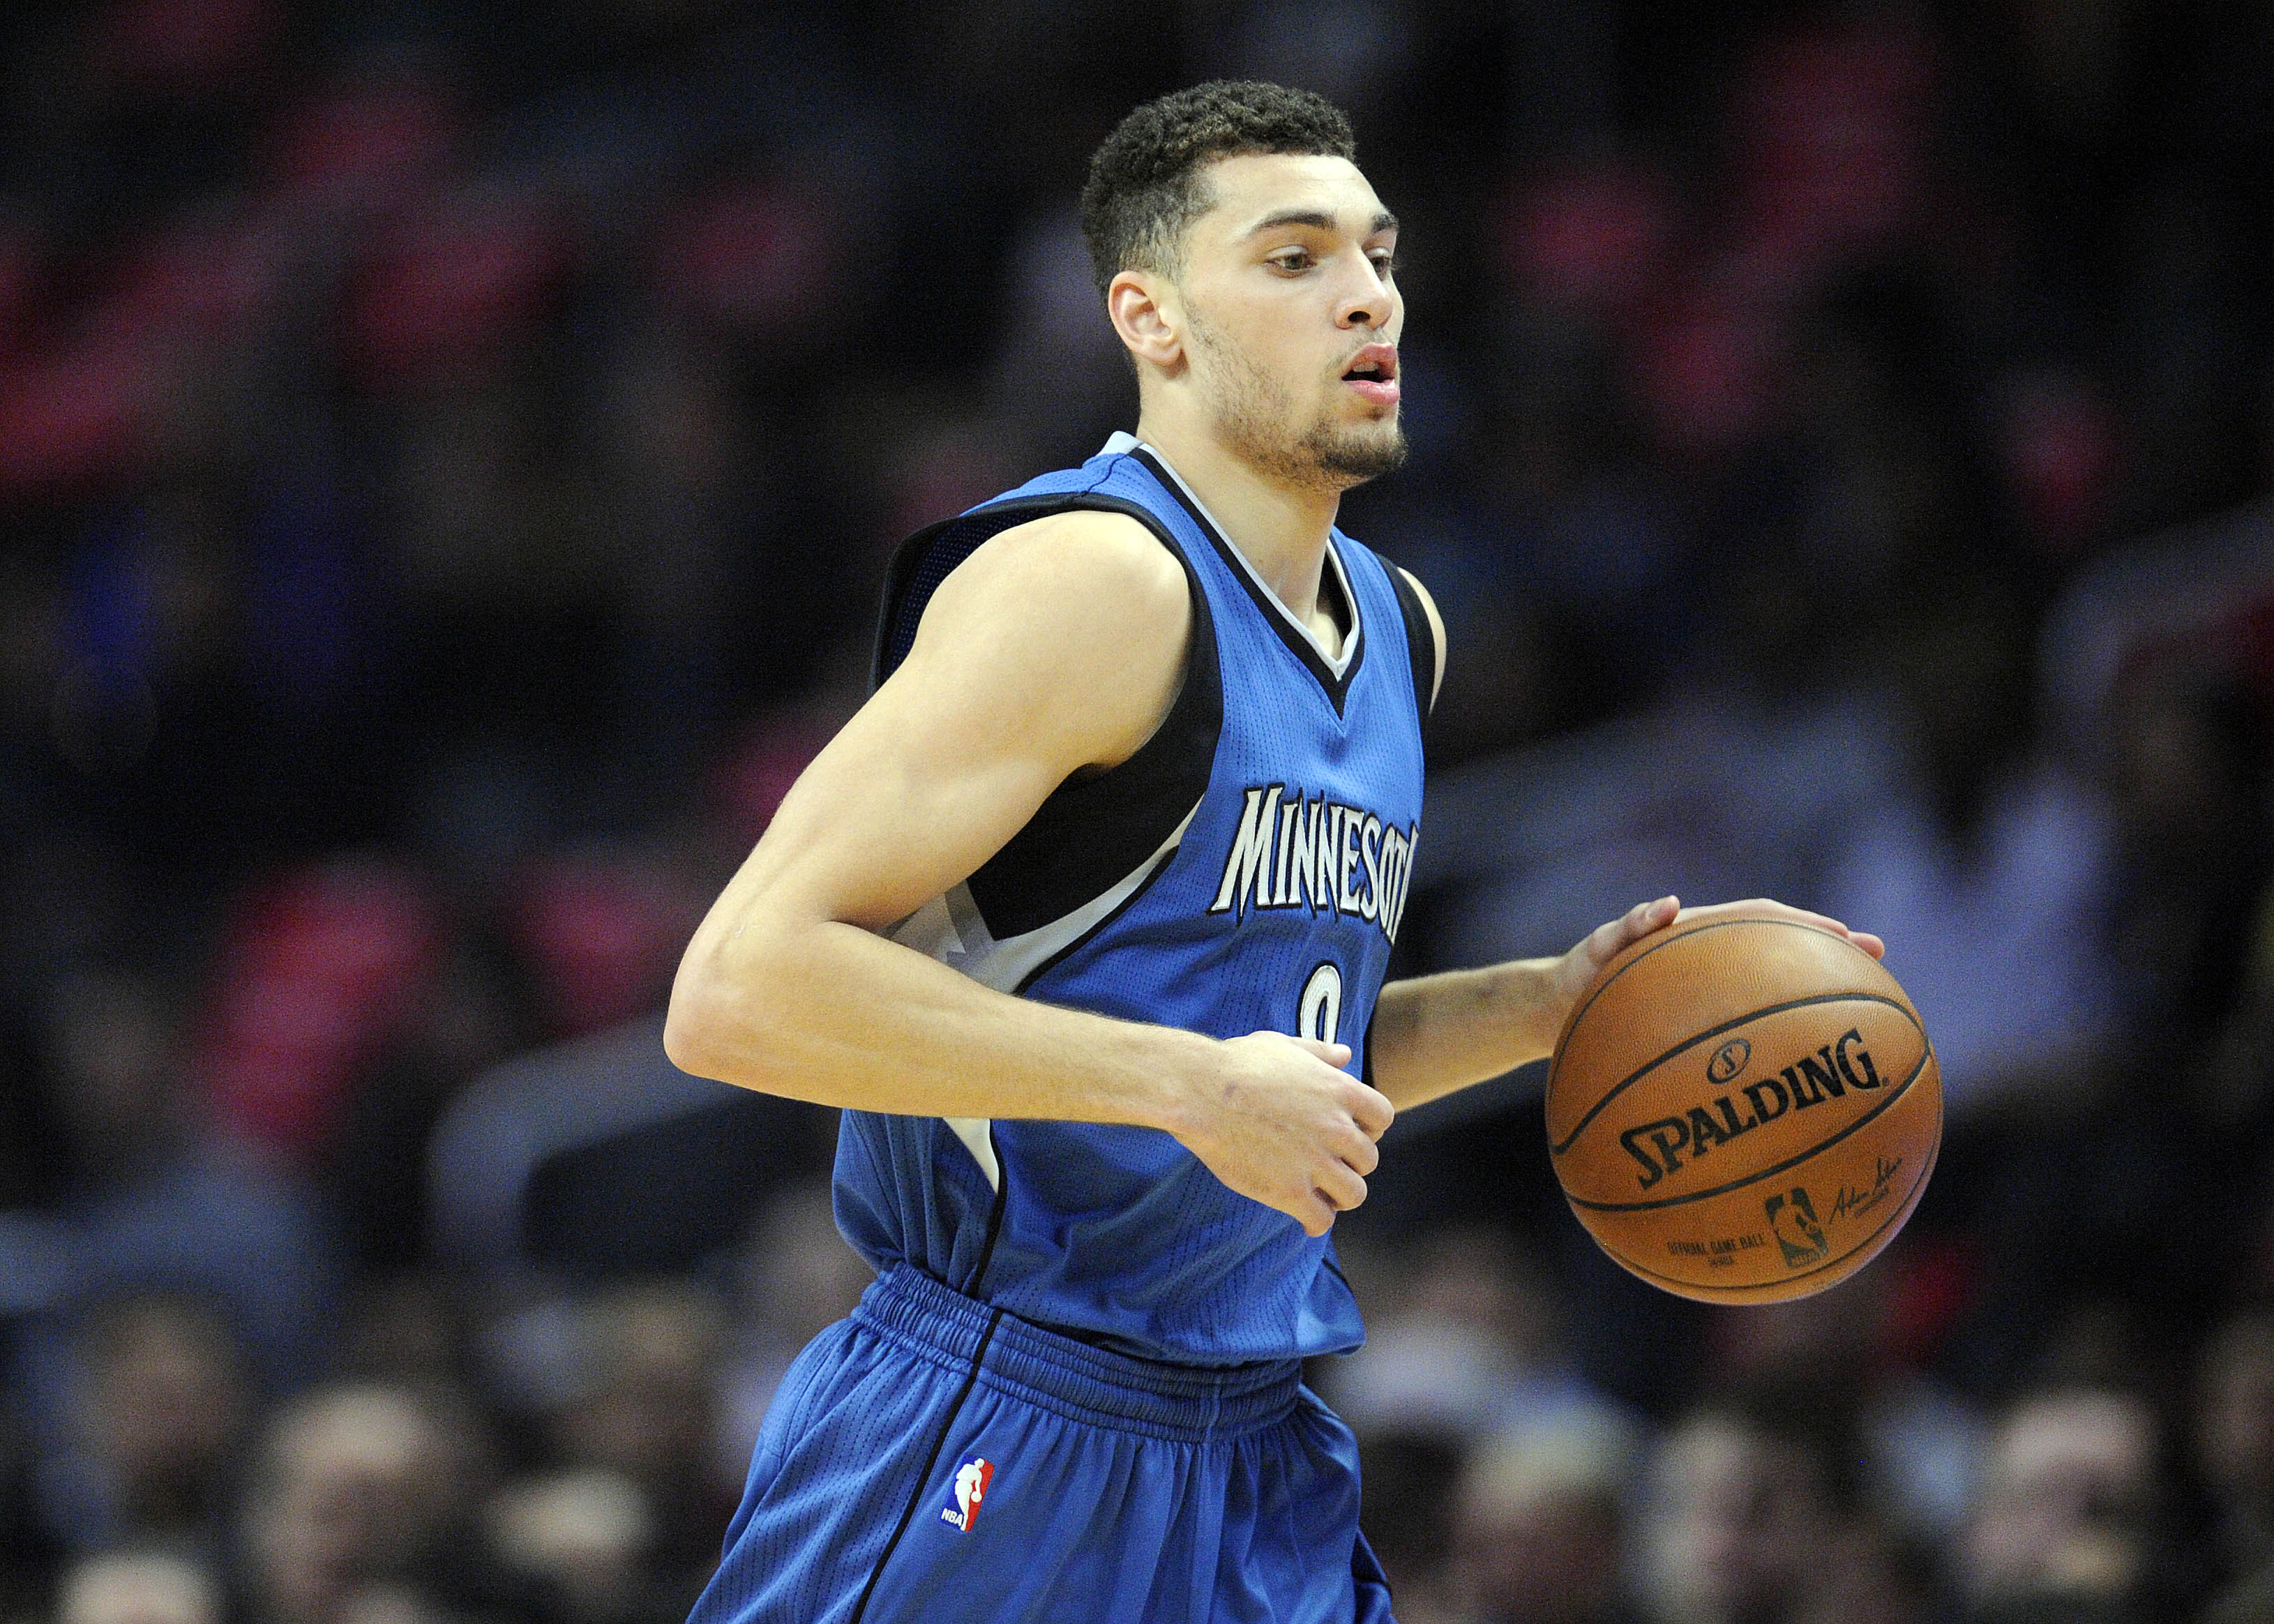 9822569-nba-minnesota-timberwolves-at-los-angeles-clippers